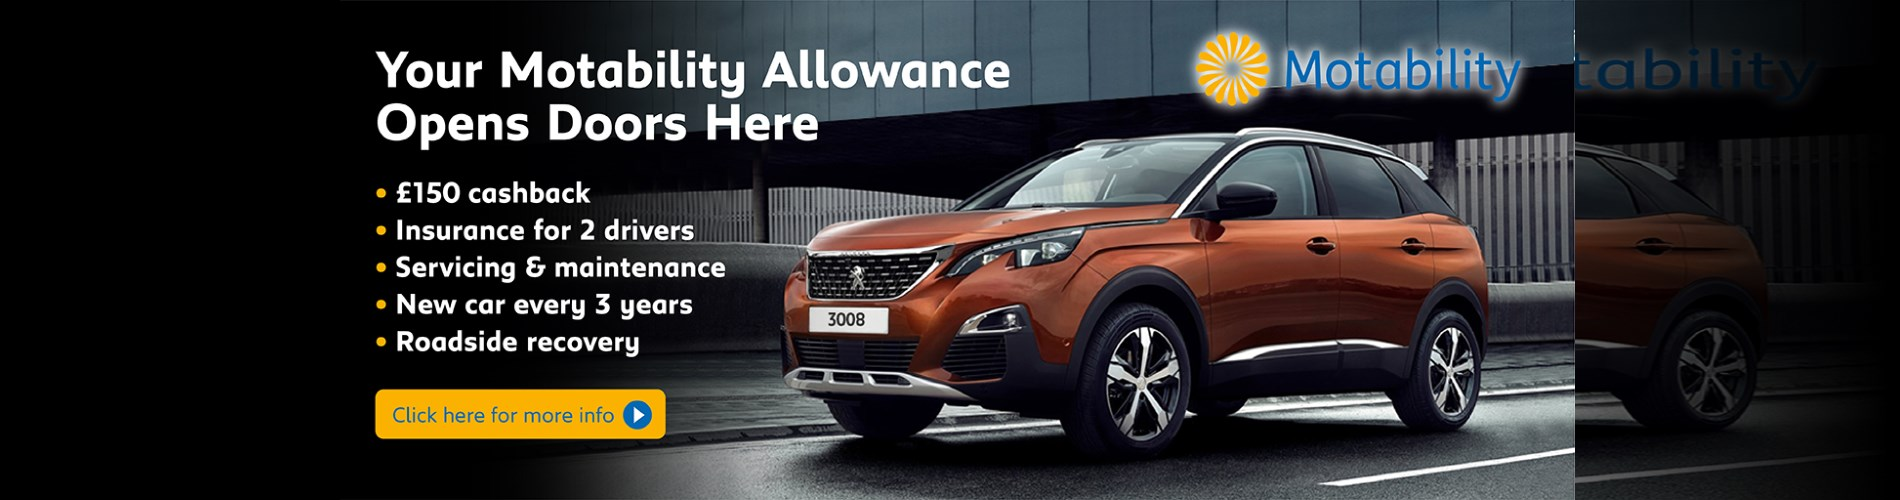 Motability Offers at Wycliffe Peugeot Rugby